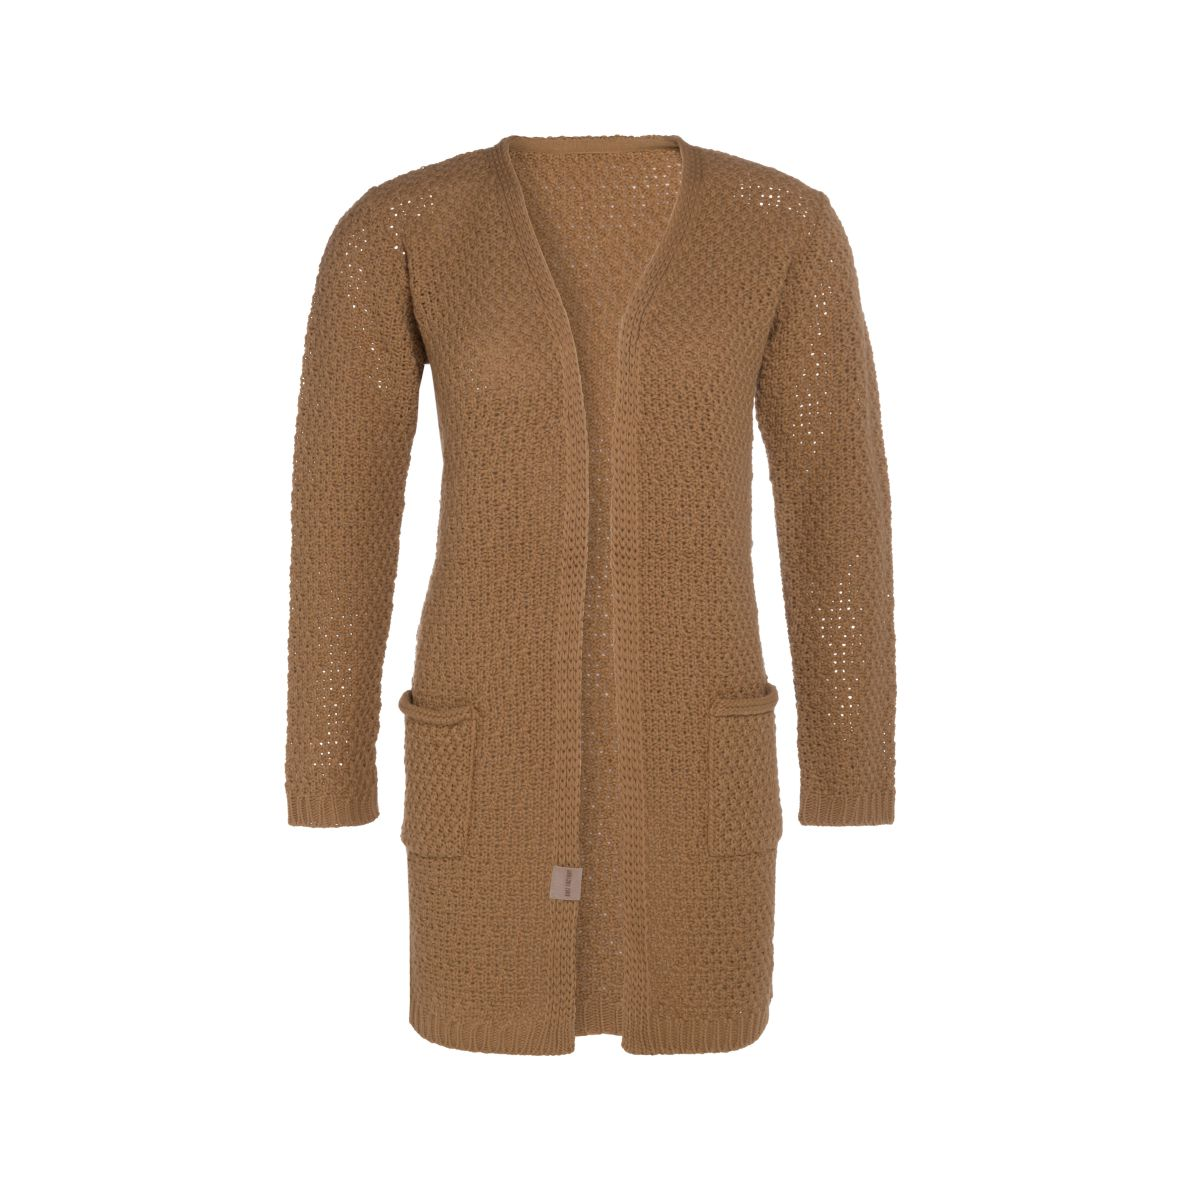 luna knitted cardigan new camel 4042 with side pockets